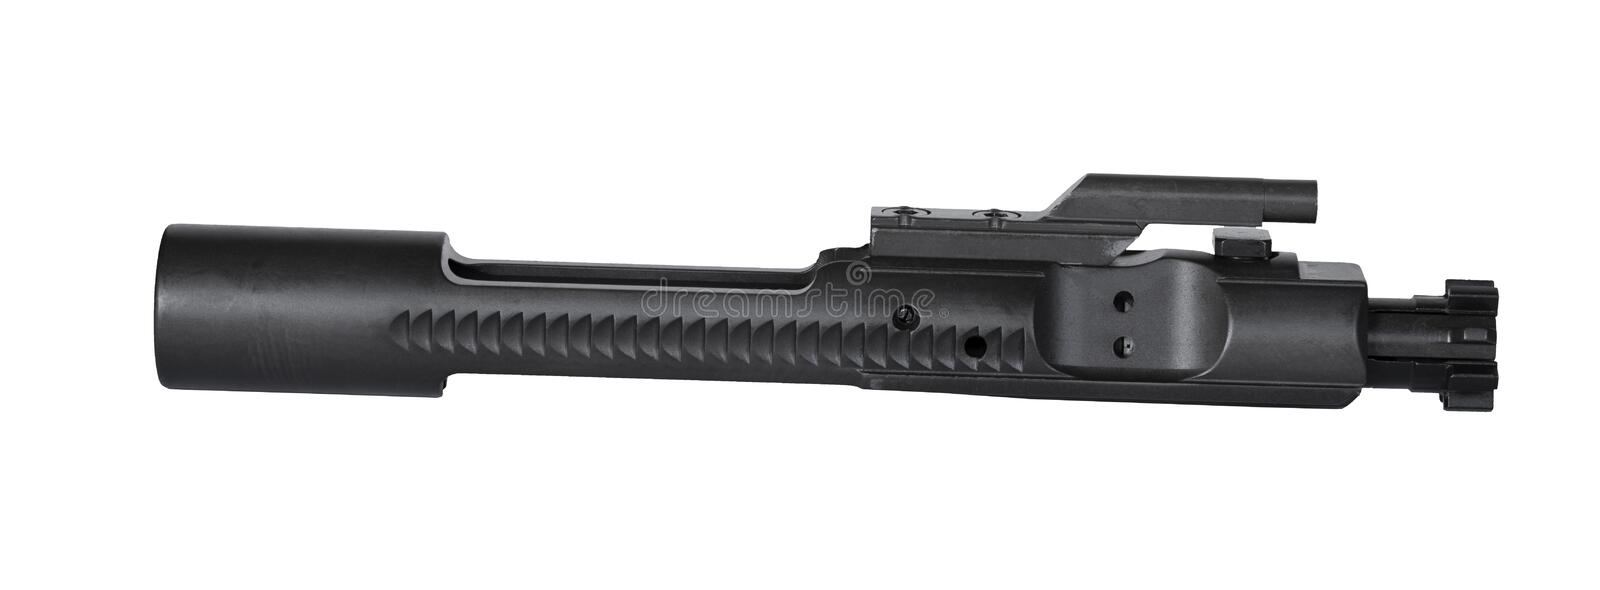 Assault rifle bolt carrier group. AR-15 bolt carrier group that is isolated on a white background royalty free stock image